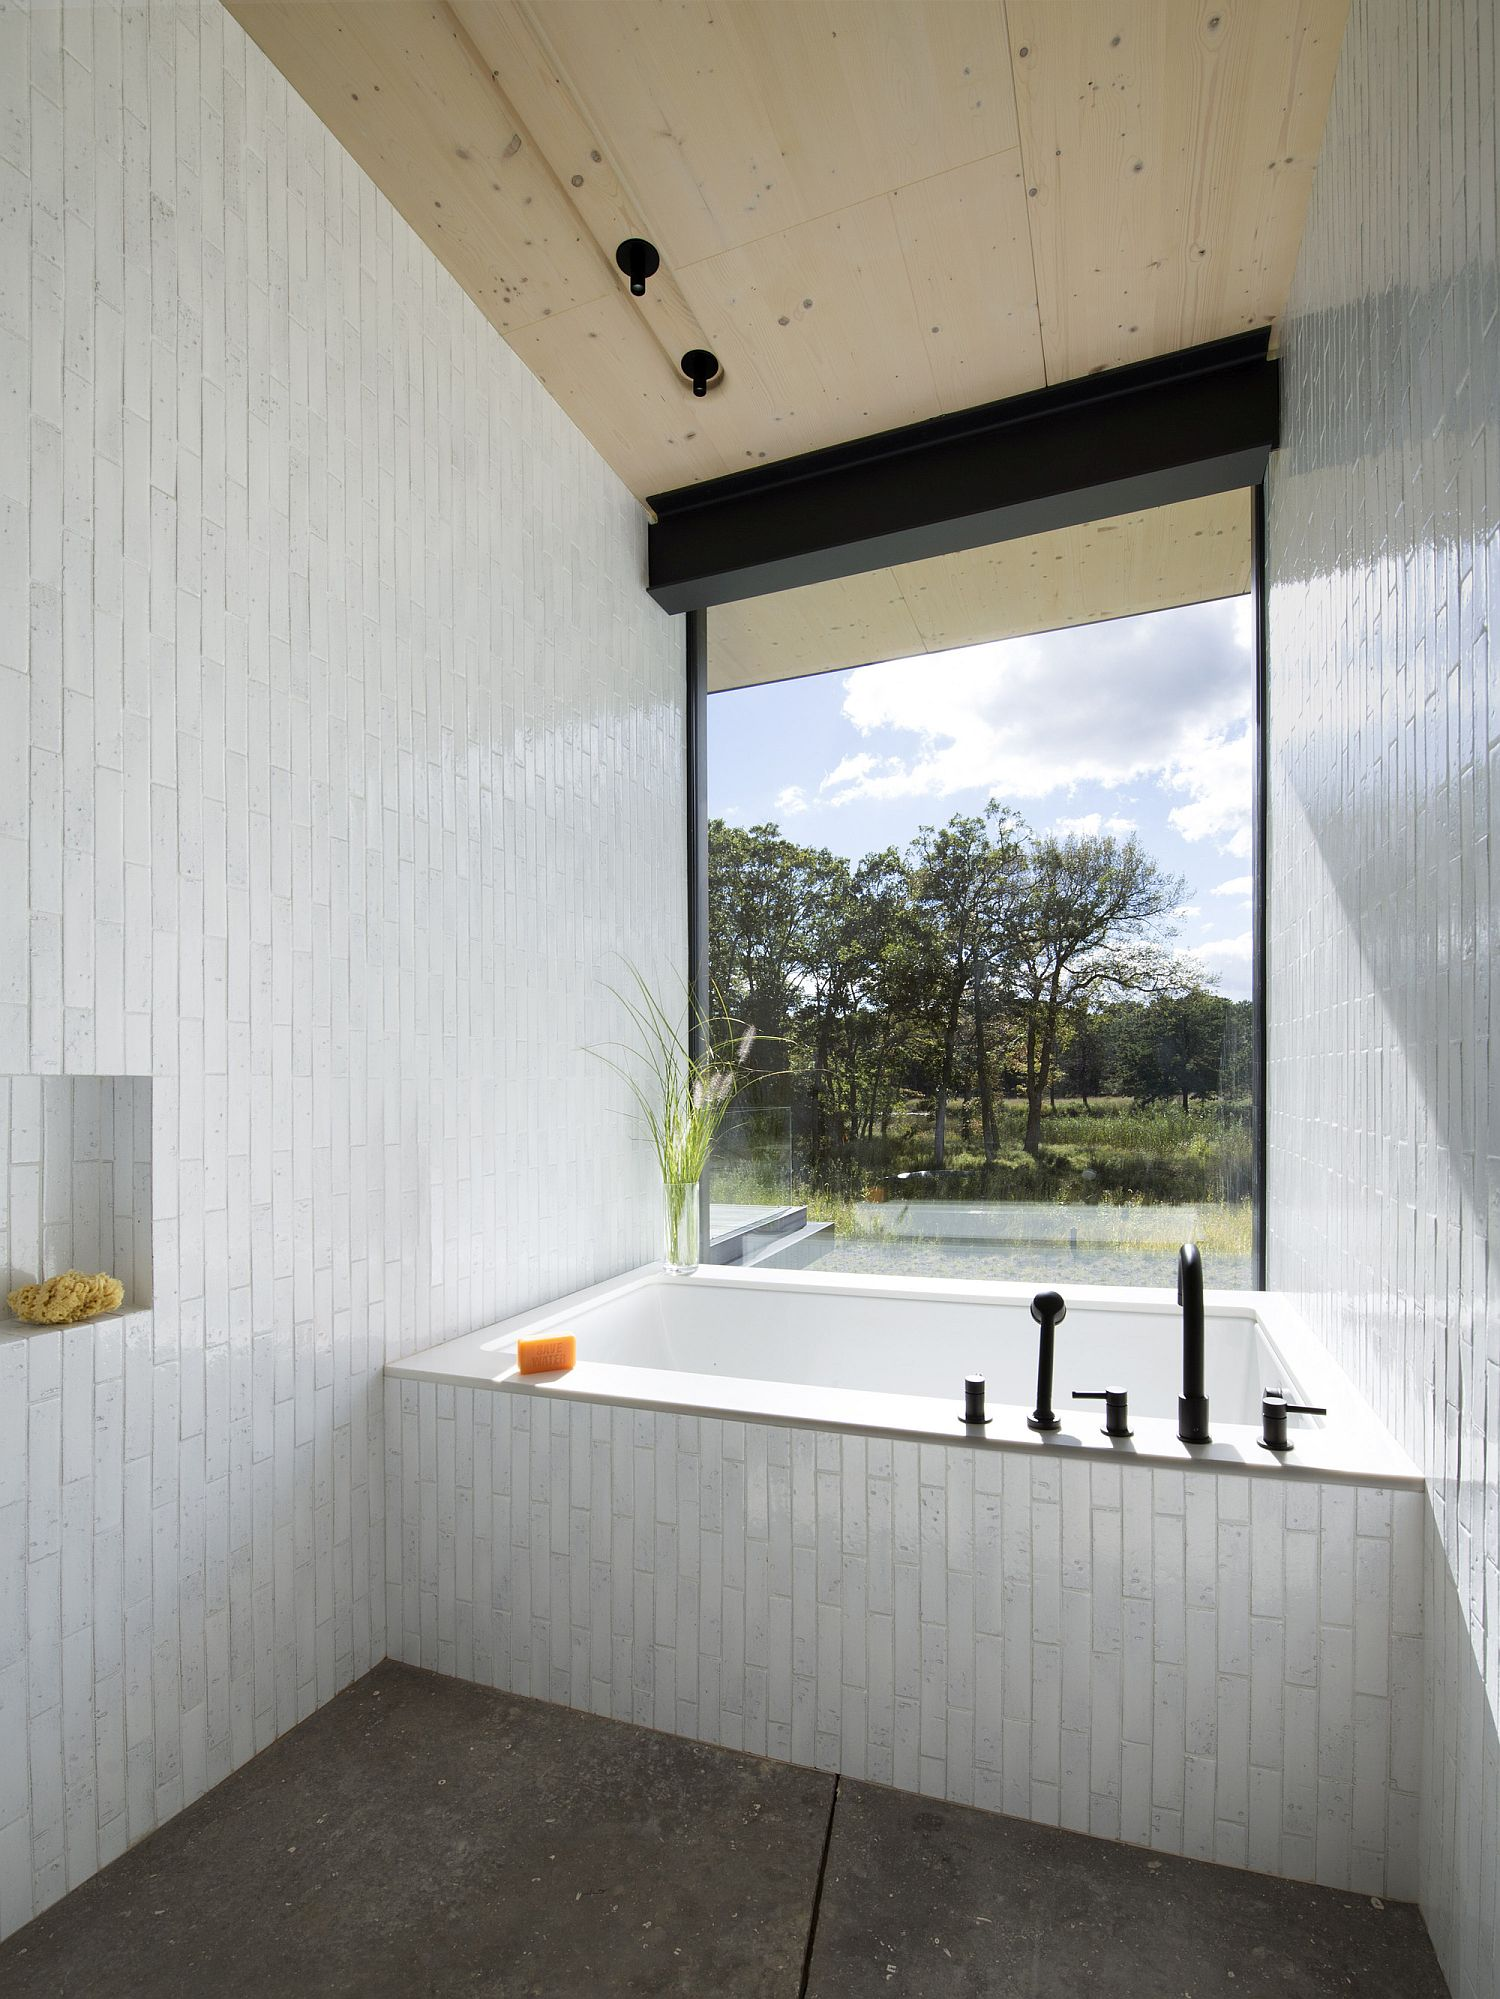 Contemporary tiled bathroom with a large window